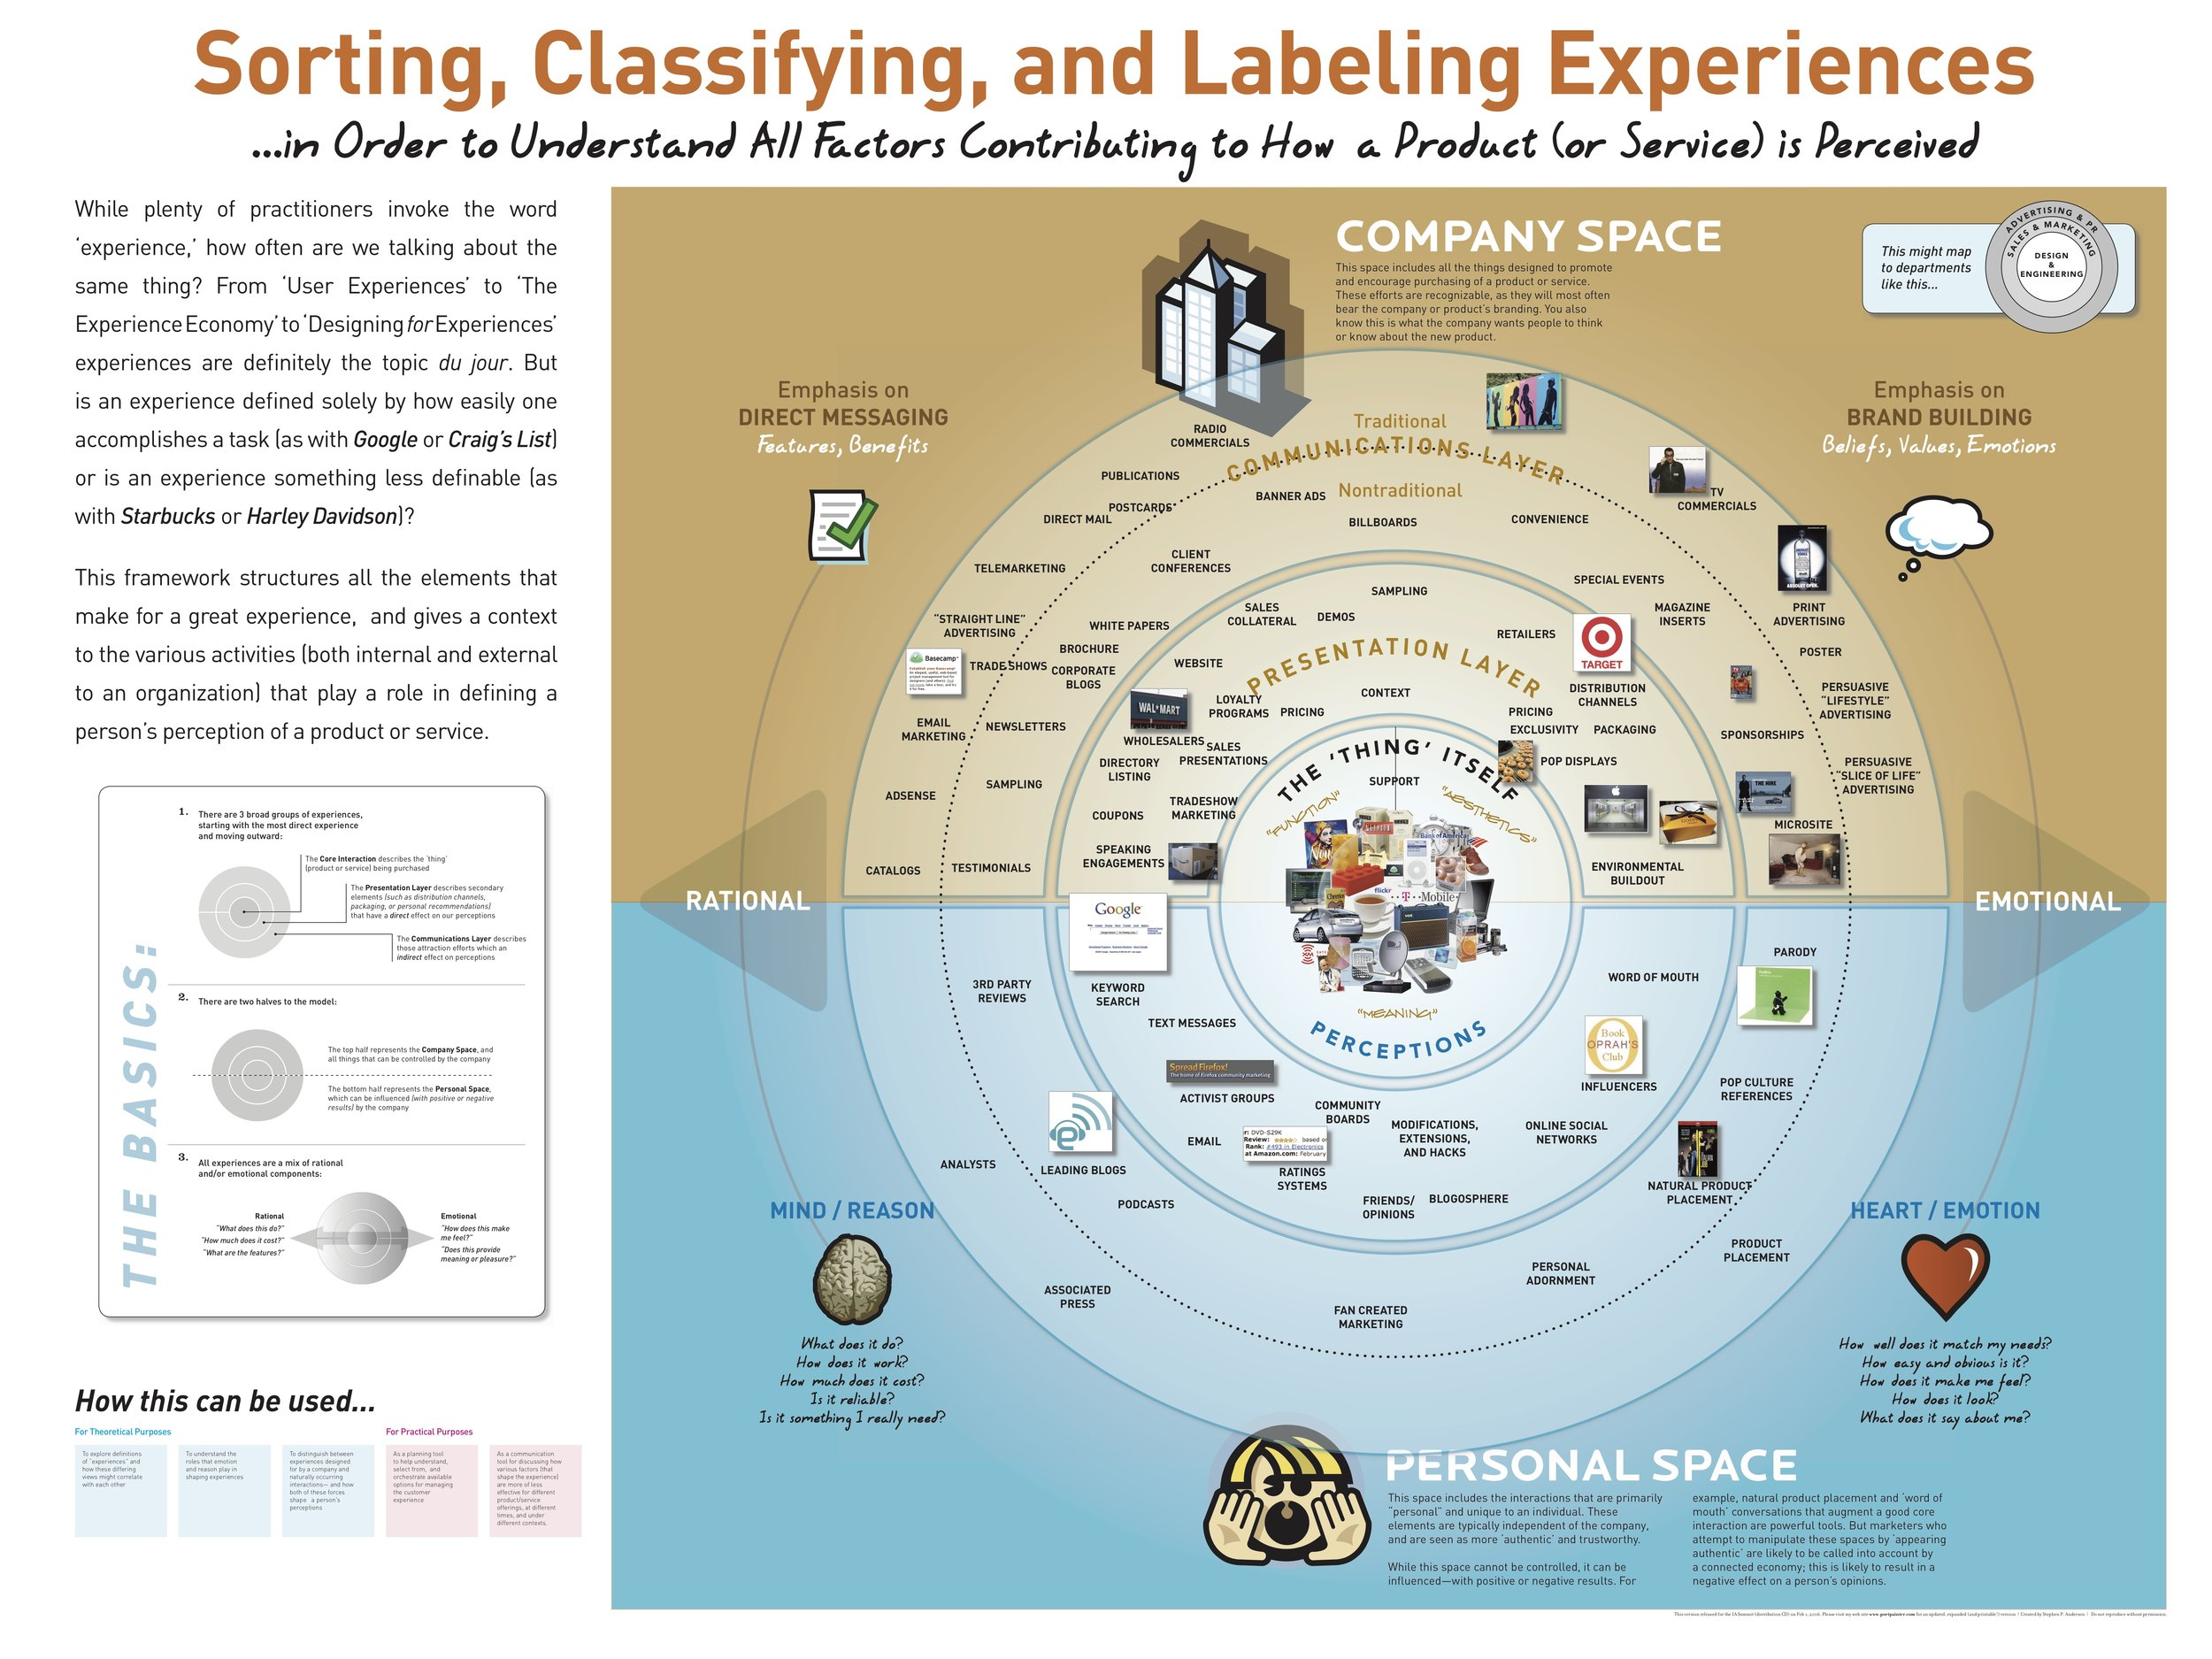 Classifying Experiences infographic